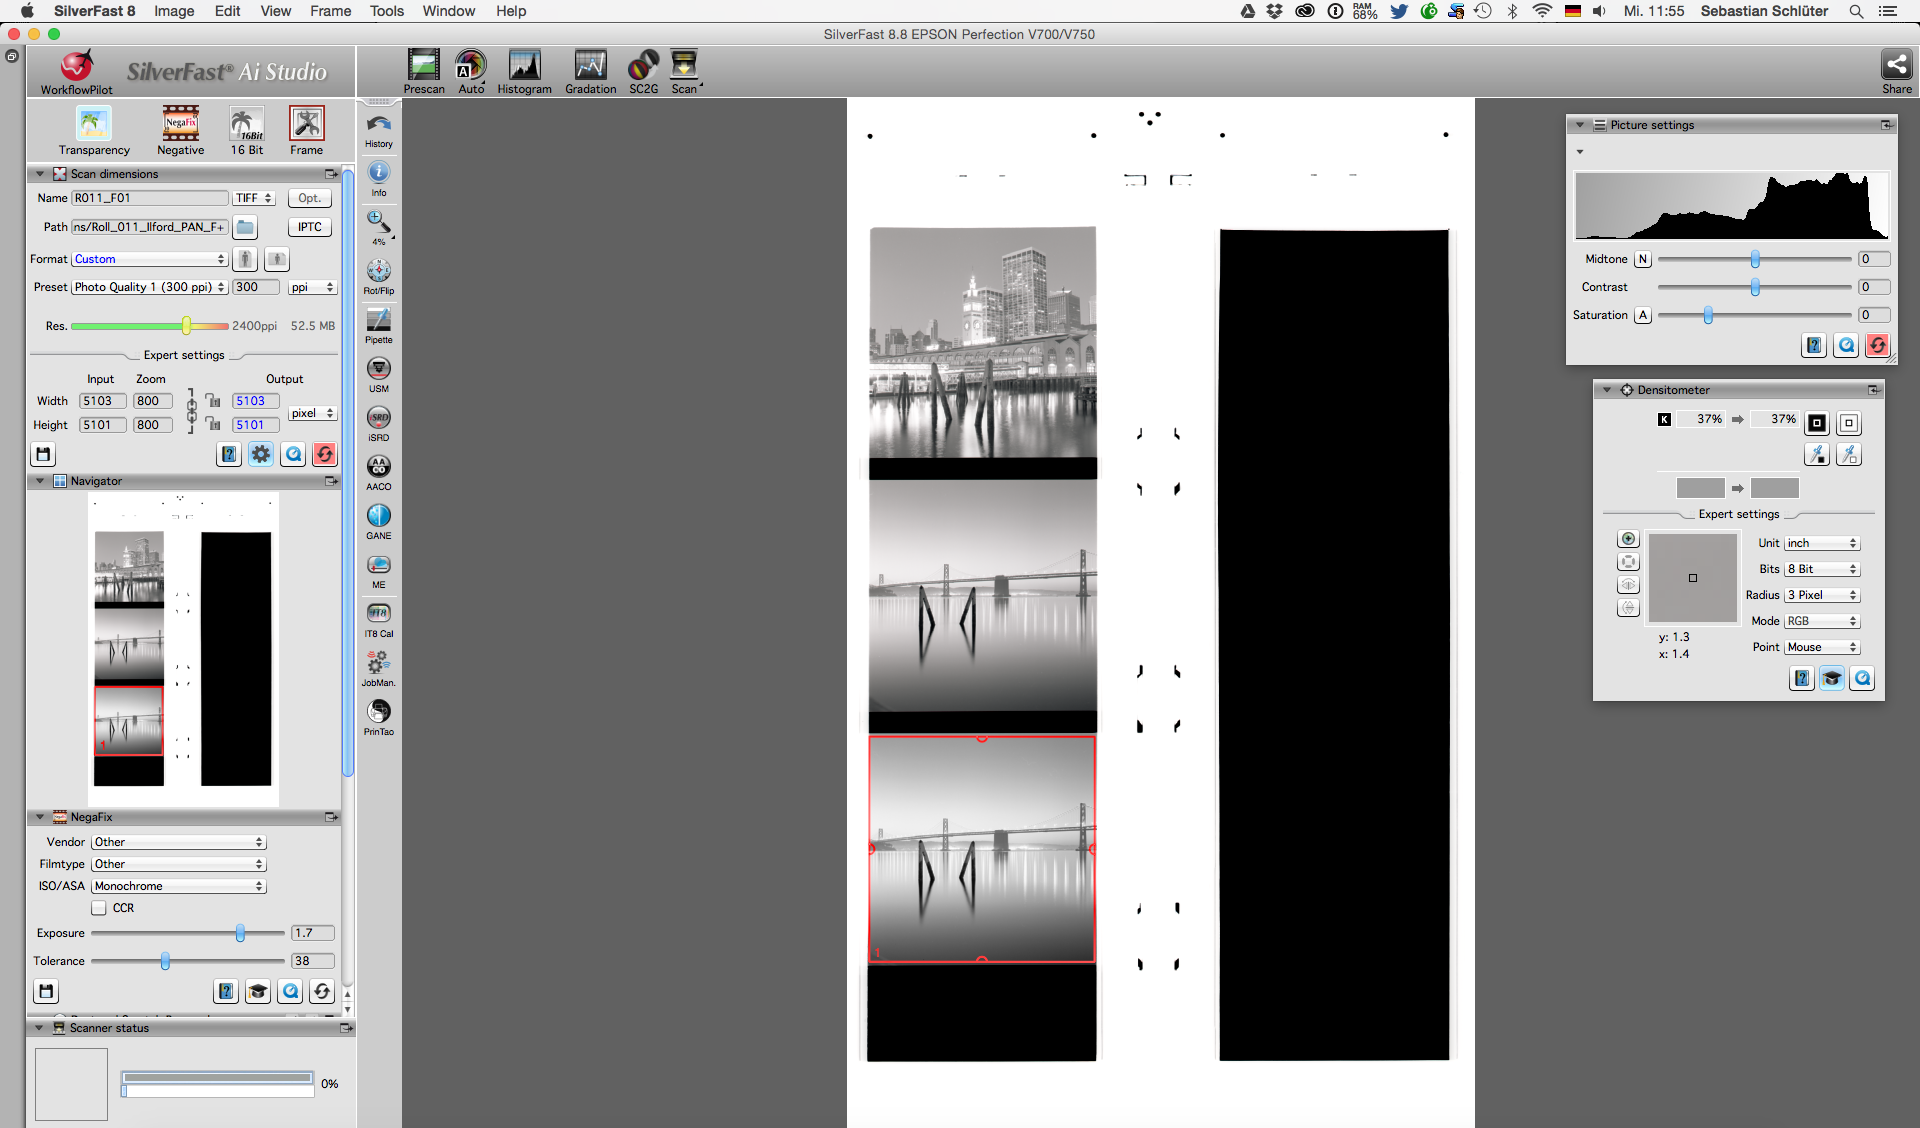 """The Silverfast 8.8 interface after the prescan. The red frame will indicate the scan area. Click on the """"Zoom"""" icon to make fine adjustments to the scan area. Make sure you scan as Tiff and select 16bit grayscale for black and white film."""